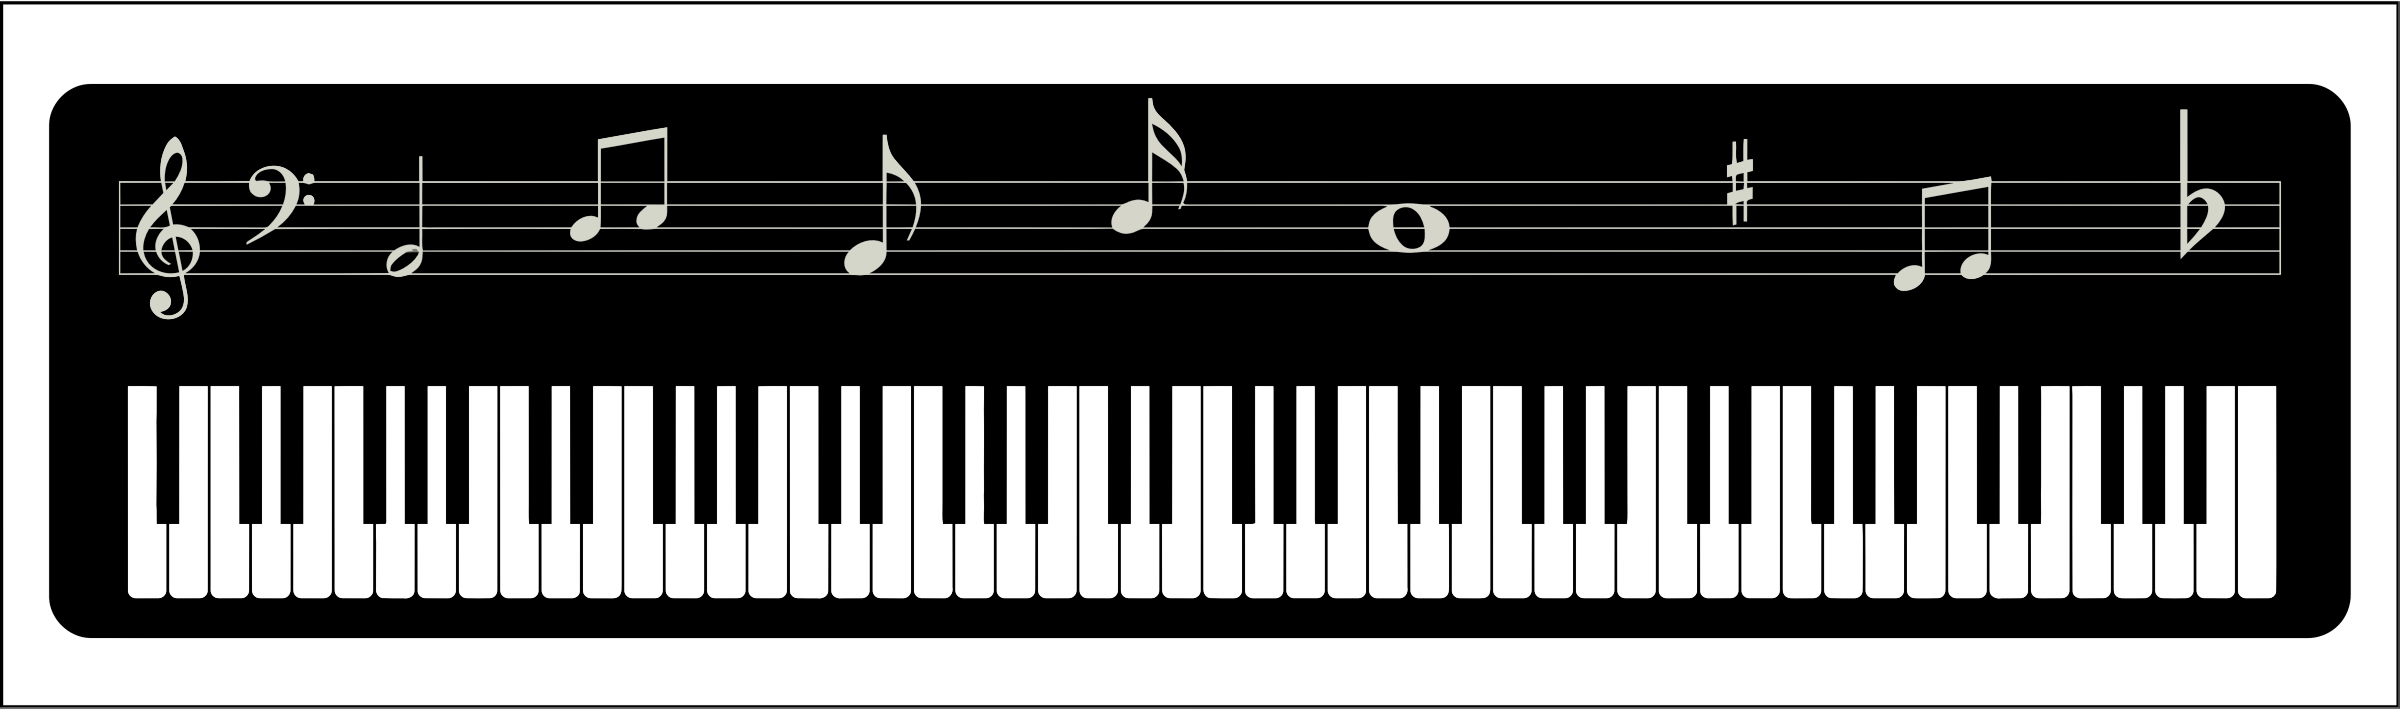 Piano Keyboard with Notes vector file image - Free stock ...